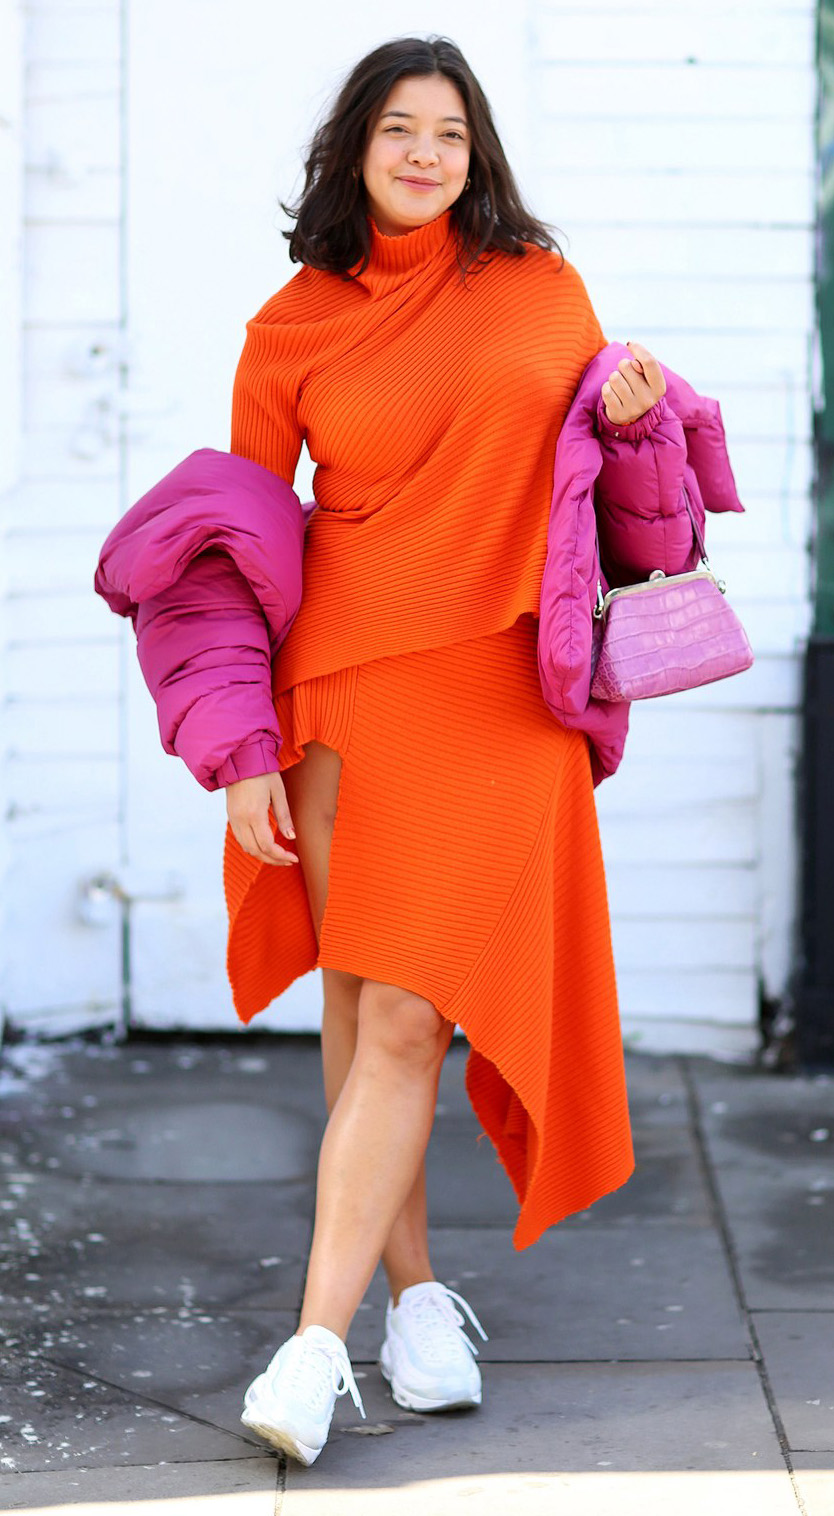 orange-midi-skirt-orange-sweater-turtleneck-pink-bag-hairr-pink-magenta-jacket-coat-puffer-lob-white-shoe-sneakers-spring-summer-lunch.jpg